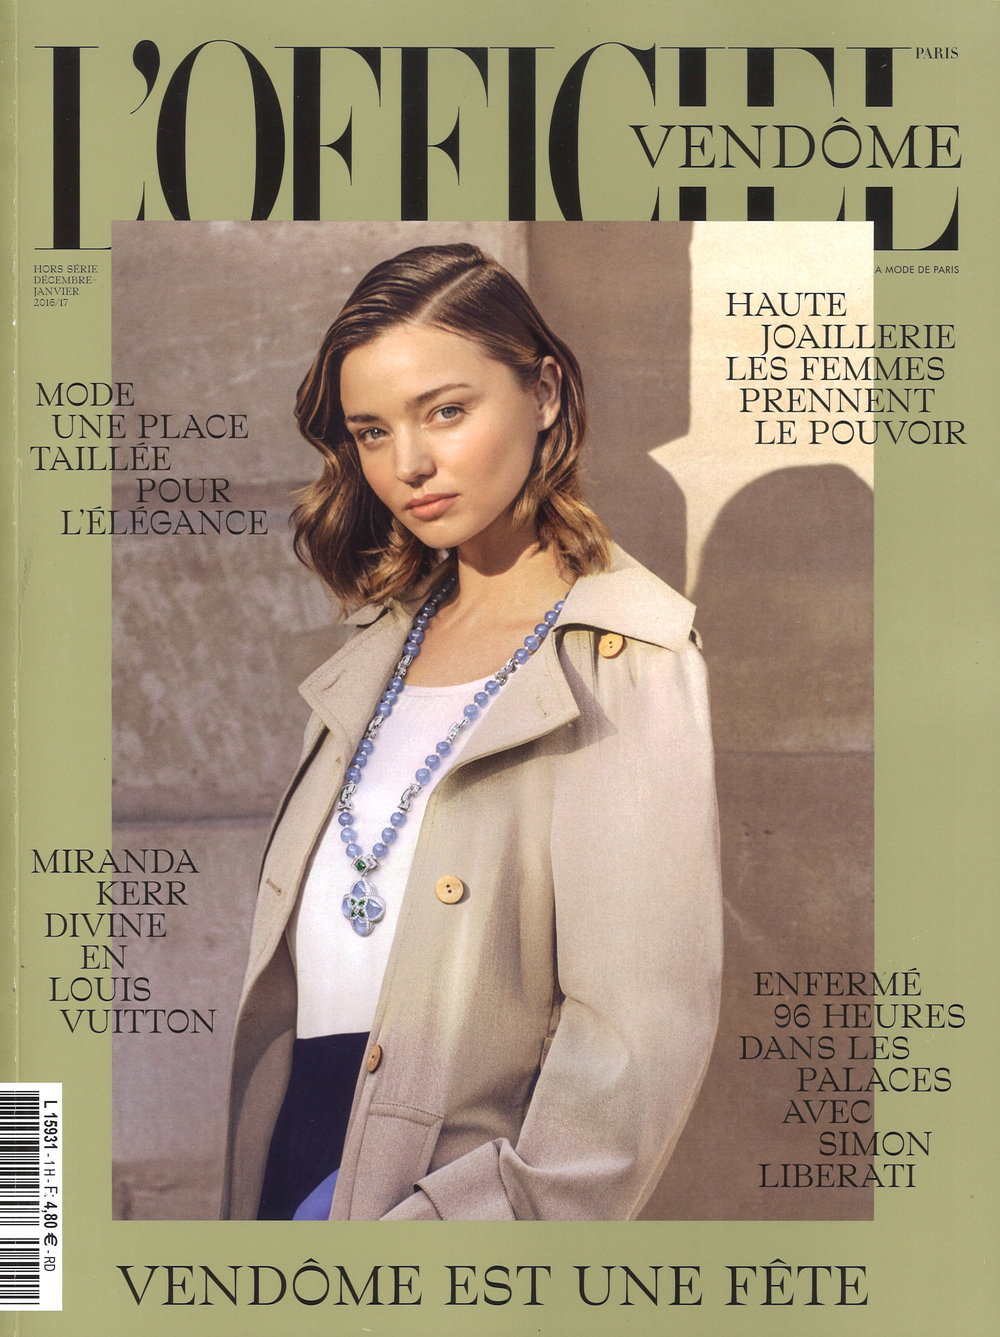 L'Officiel Vendôme Cover